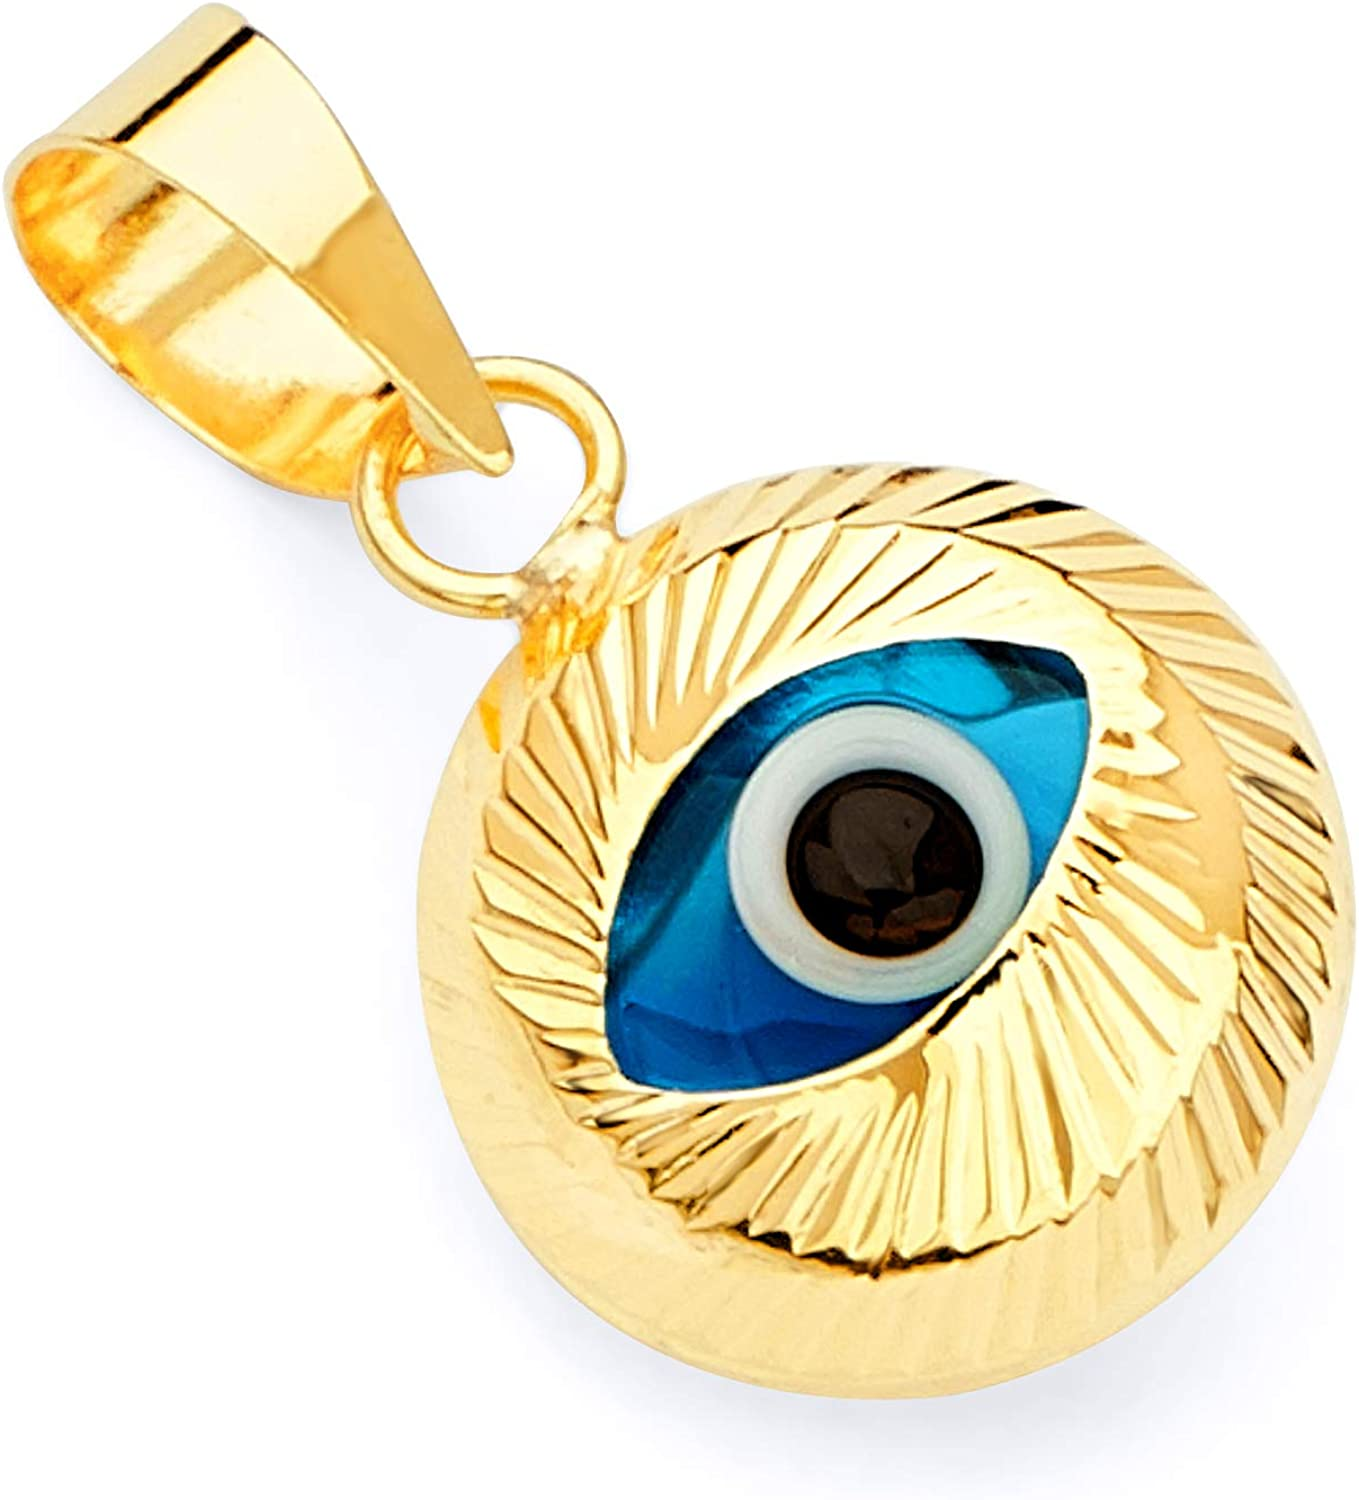 14k REAL Yellow Gold Evil Eye Fluted Charm Pendant